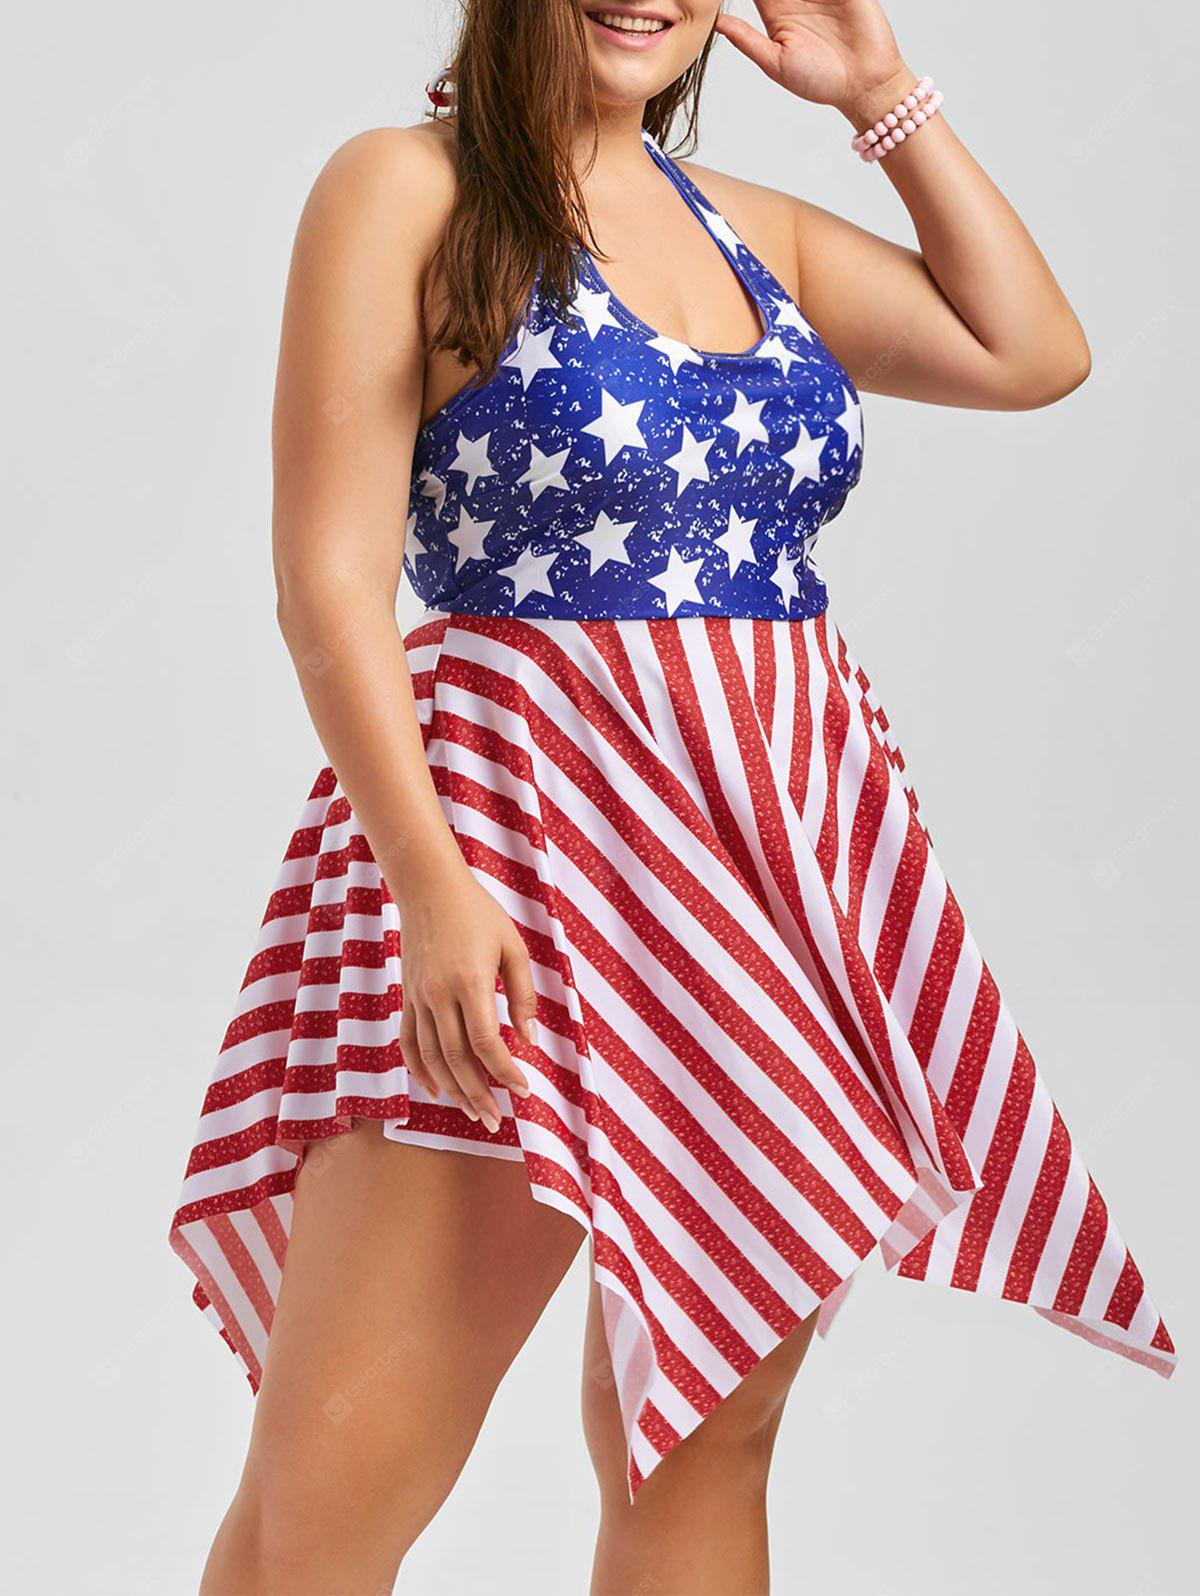 COLORMIX 2XL Plus Size Patriotic American Flag Dressy Tankini